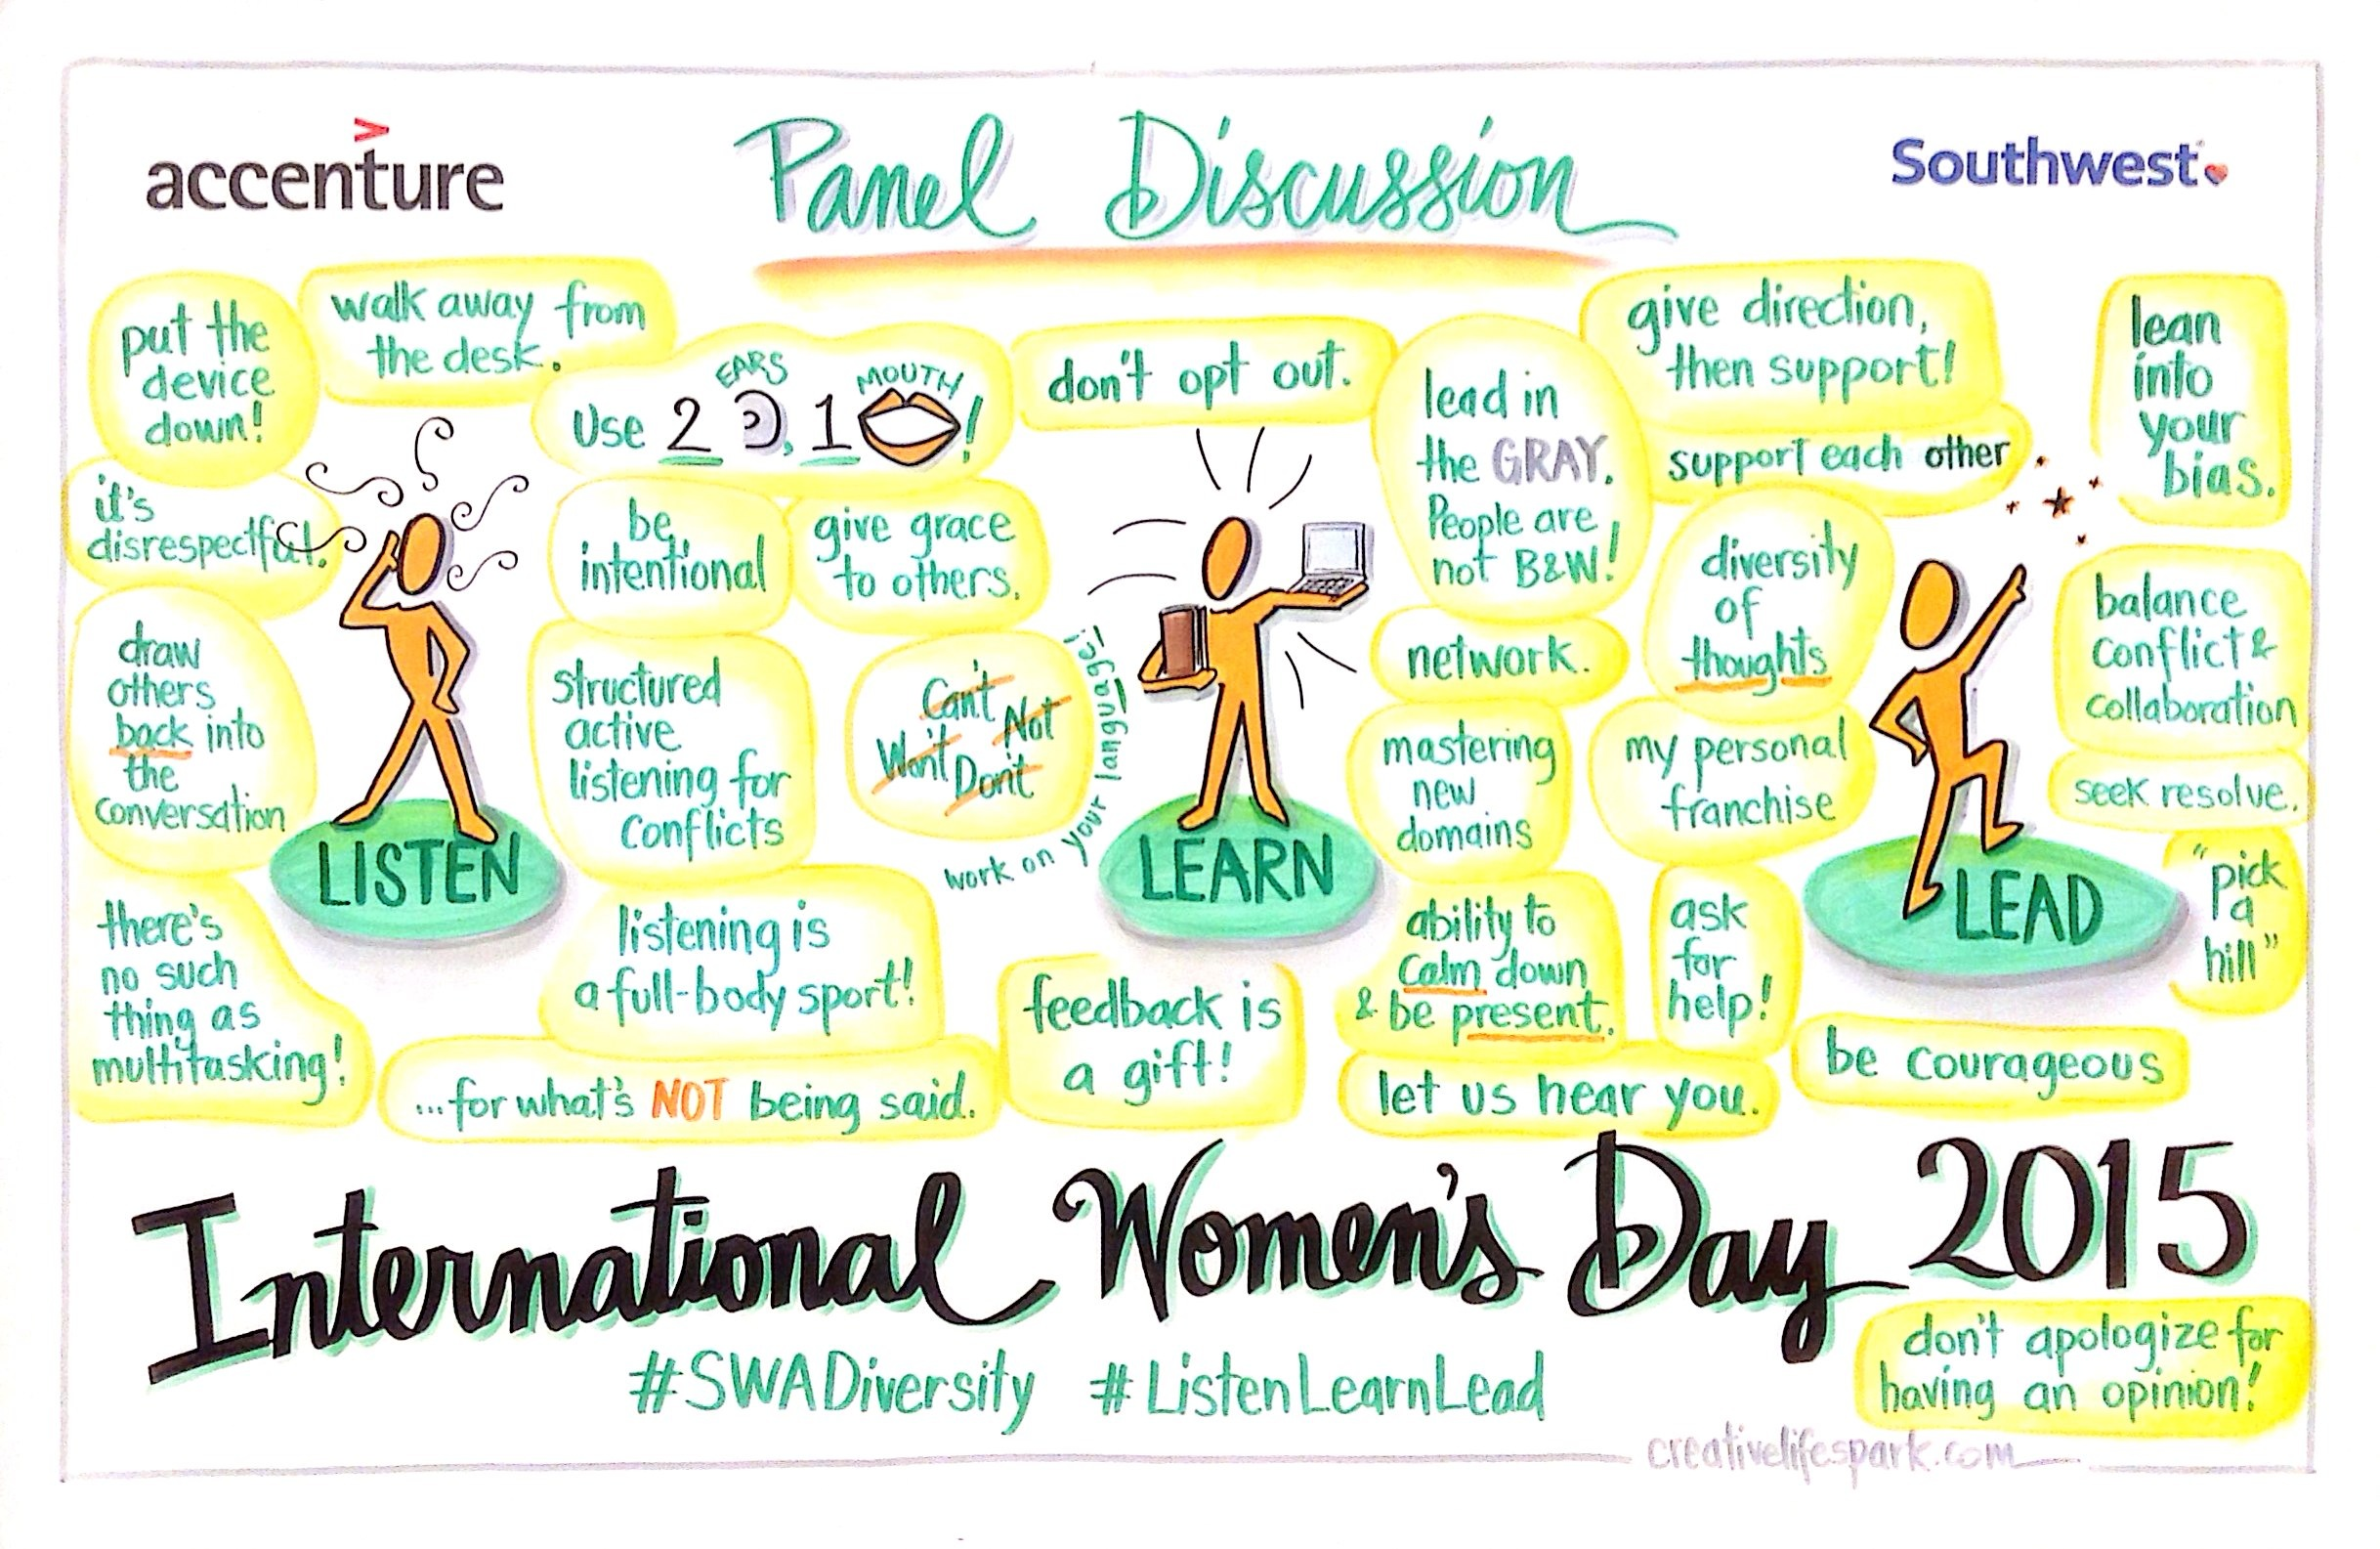 SWA IWD 2015 Panel Discussion